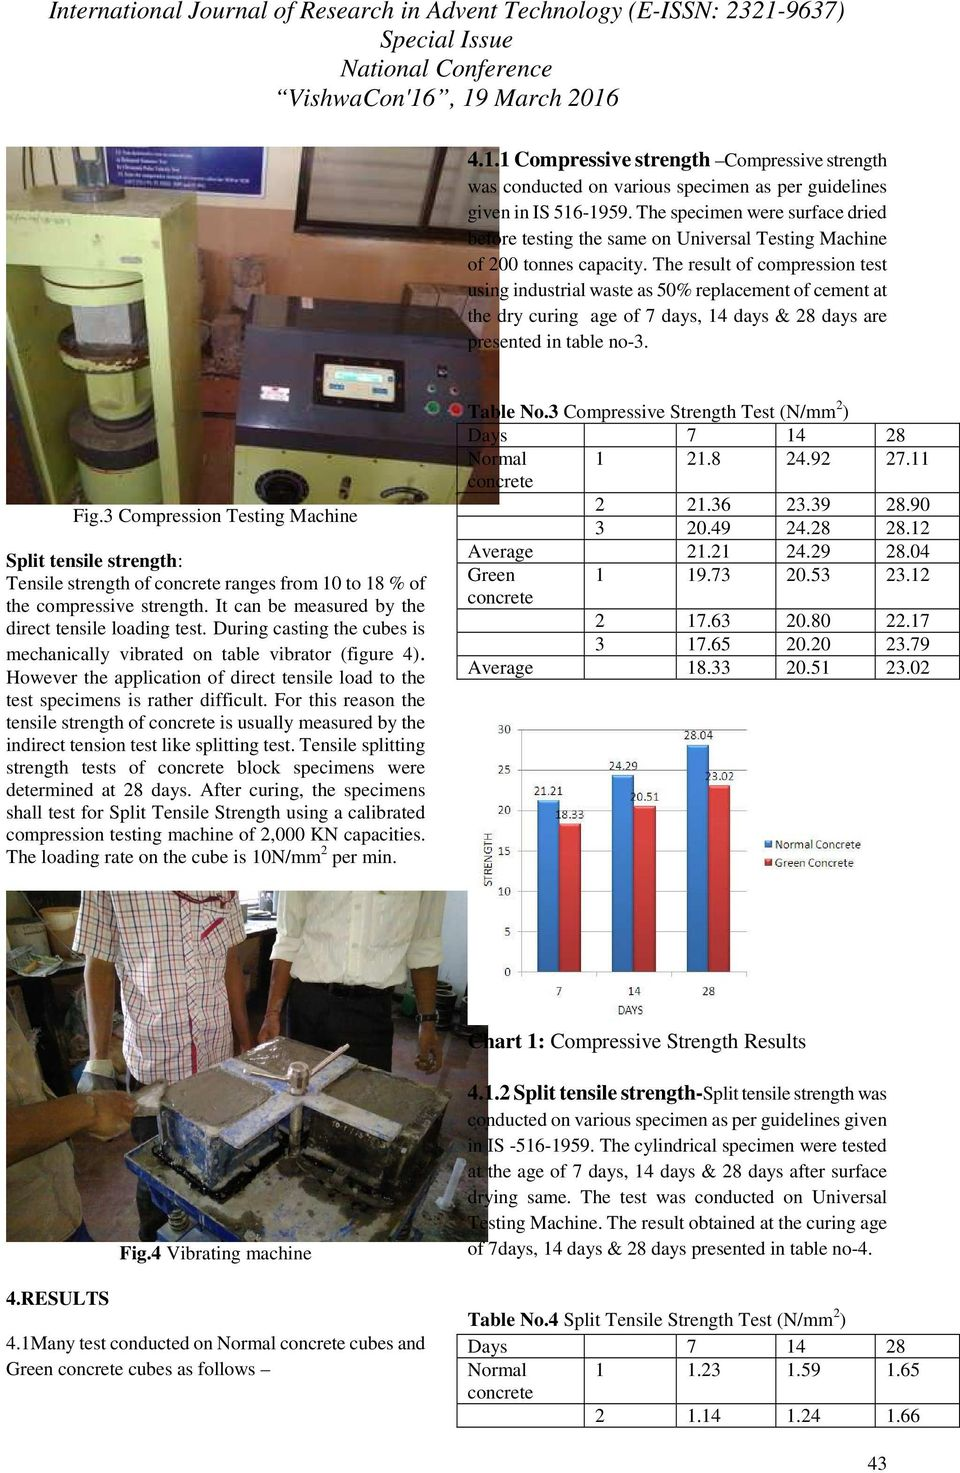 The result of compression test using industrial waste as 50% replacement of cement at the dry curing age of 7 days, 14 days & 28 days are presented in table no-3. Fig.